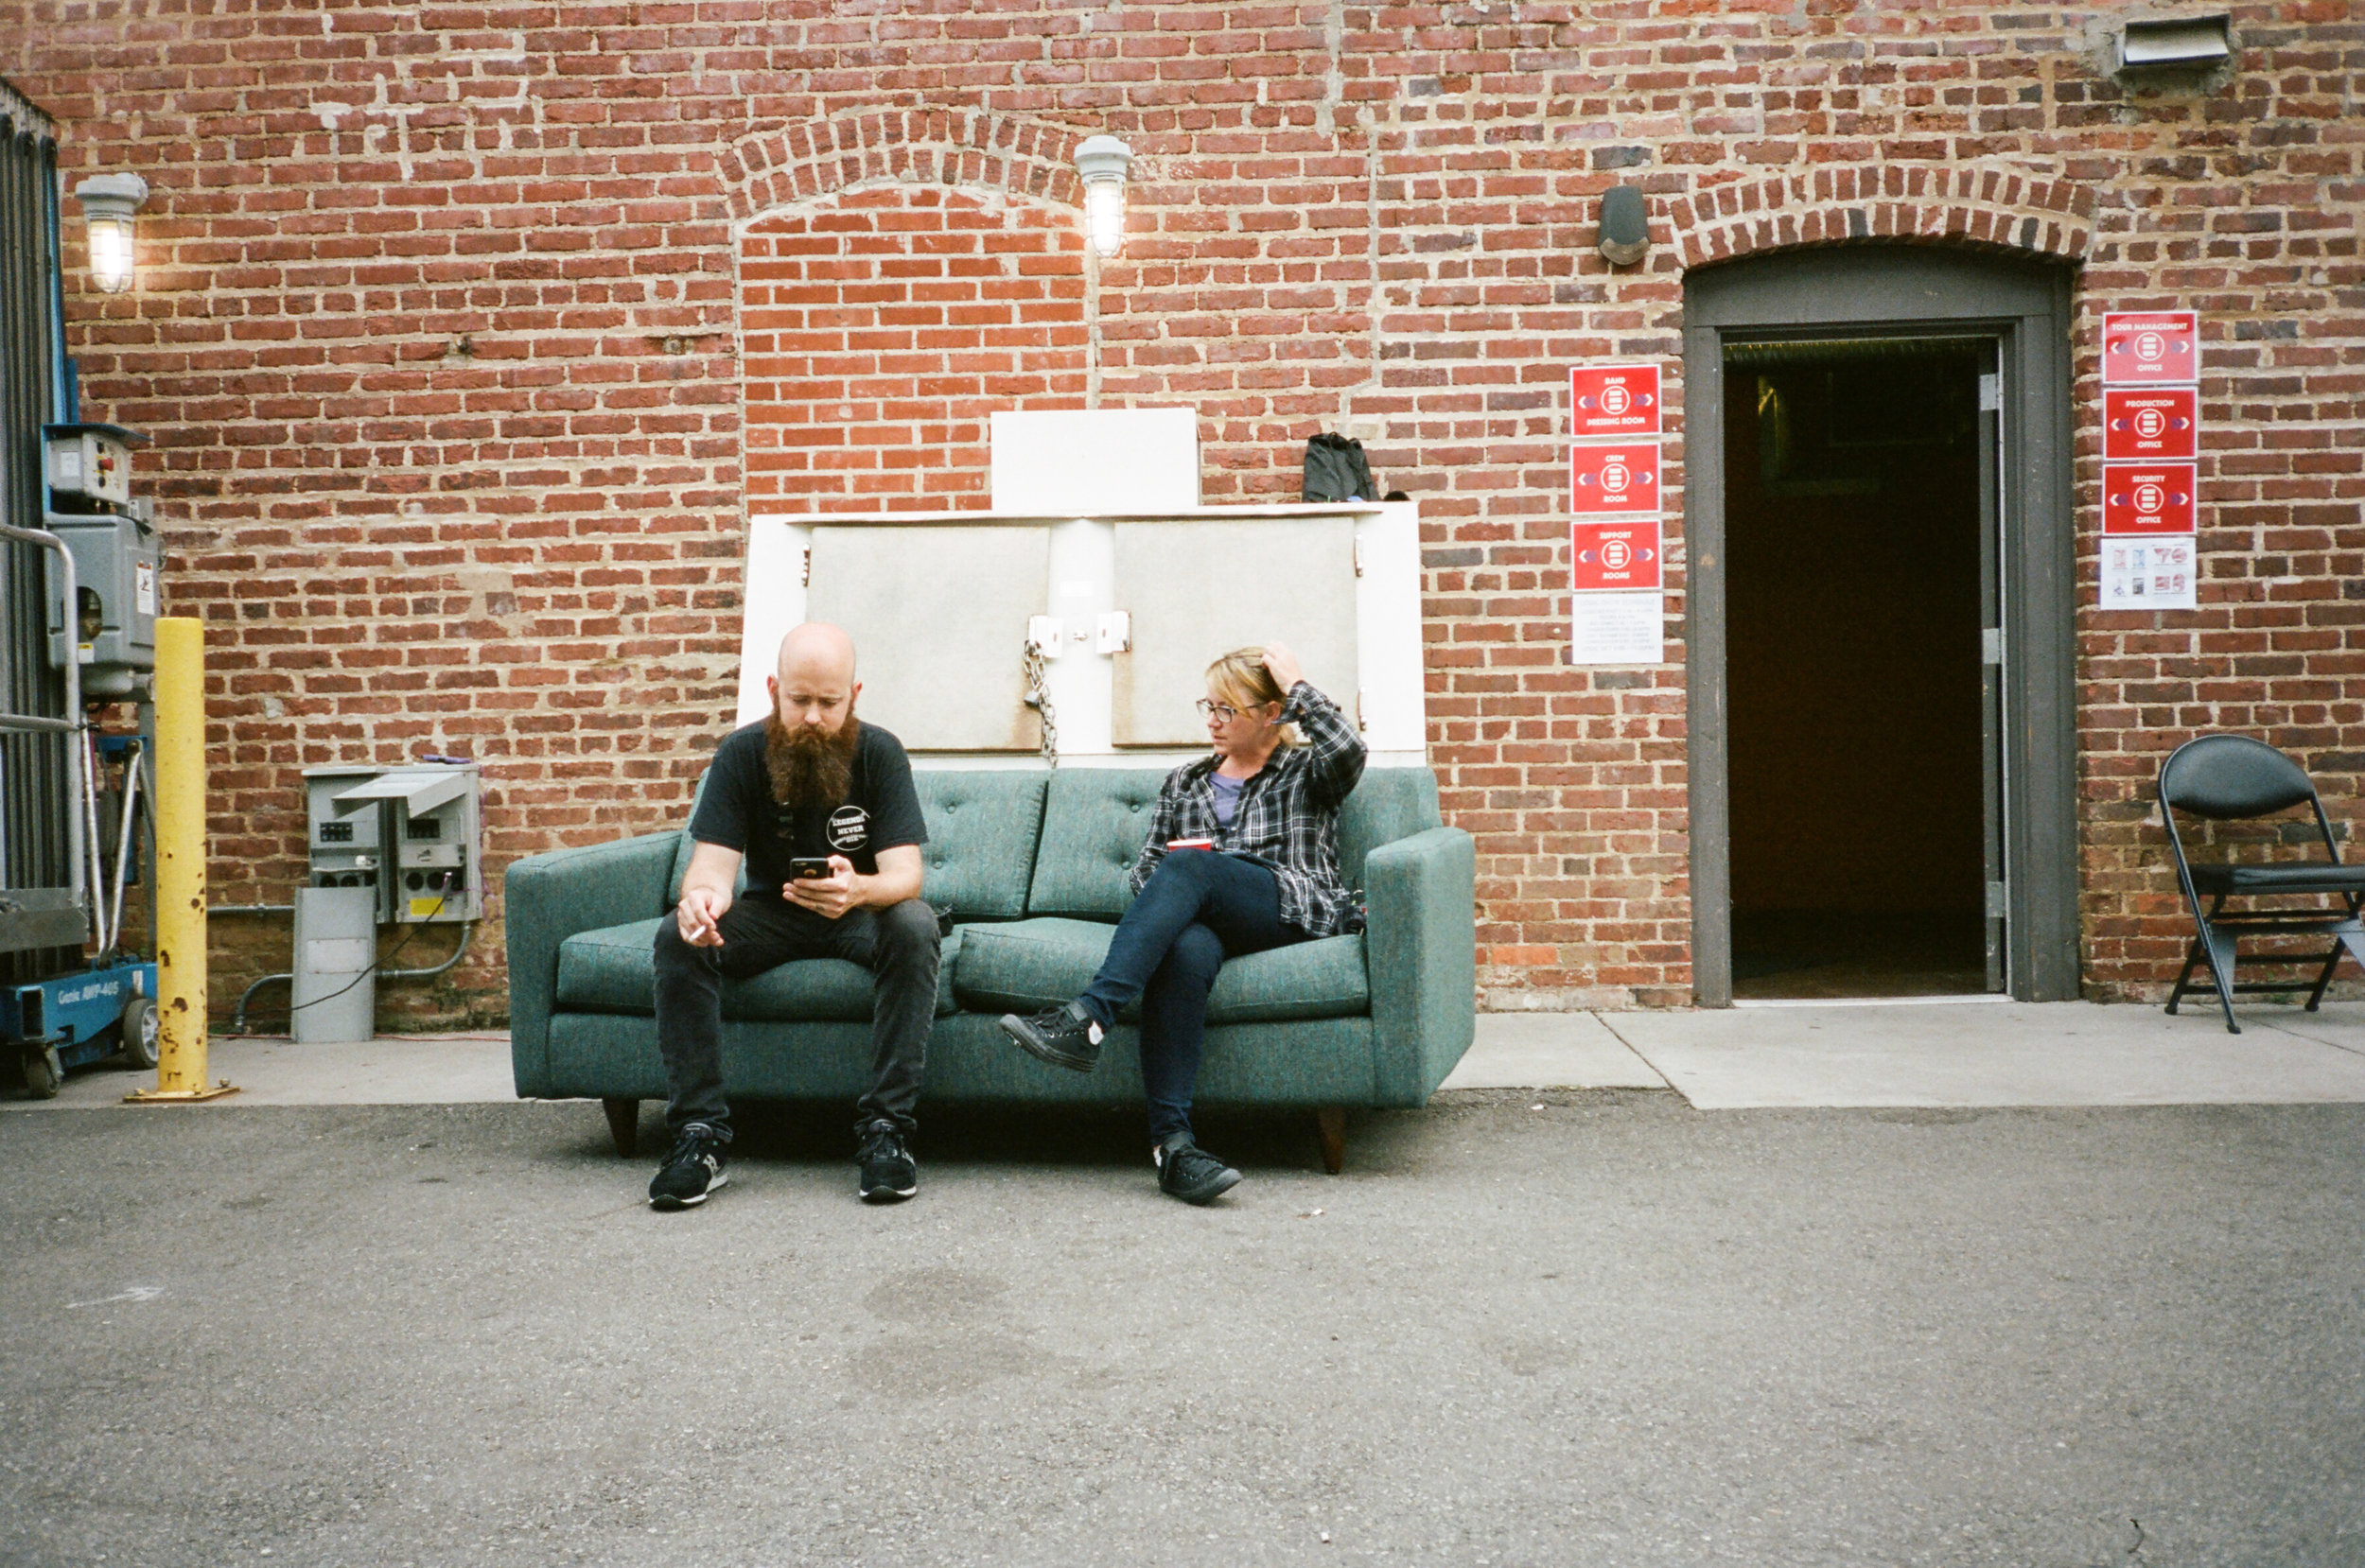 Momberg and Emily, Logic's LD, taking a cig break midday.